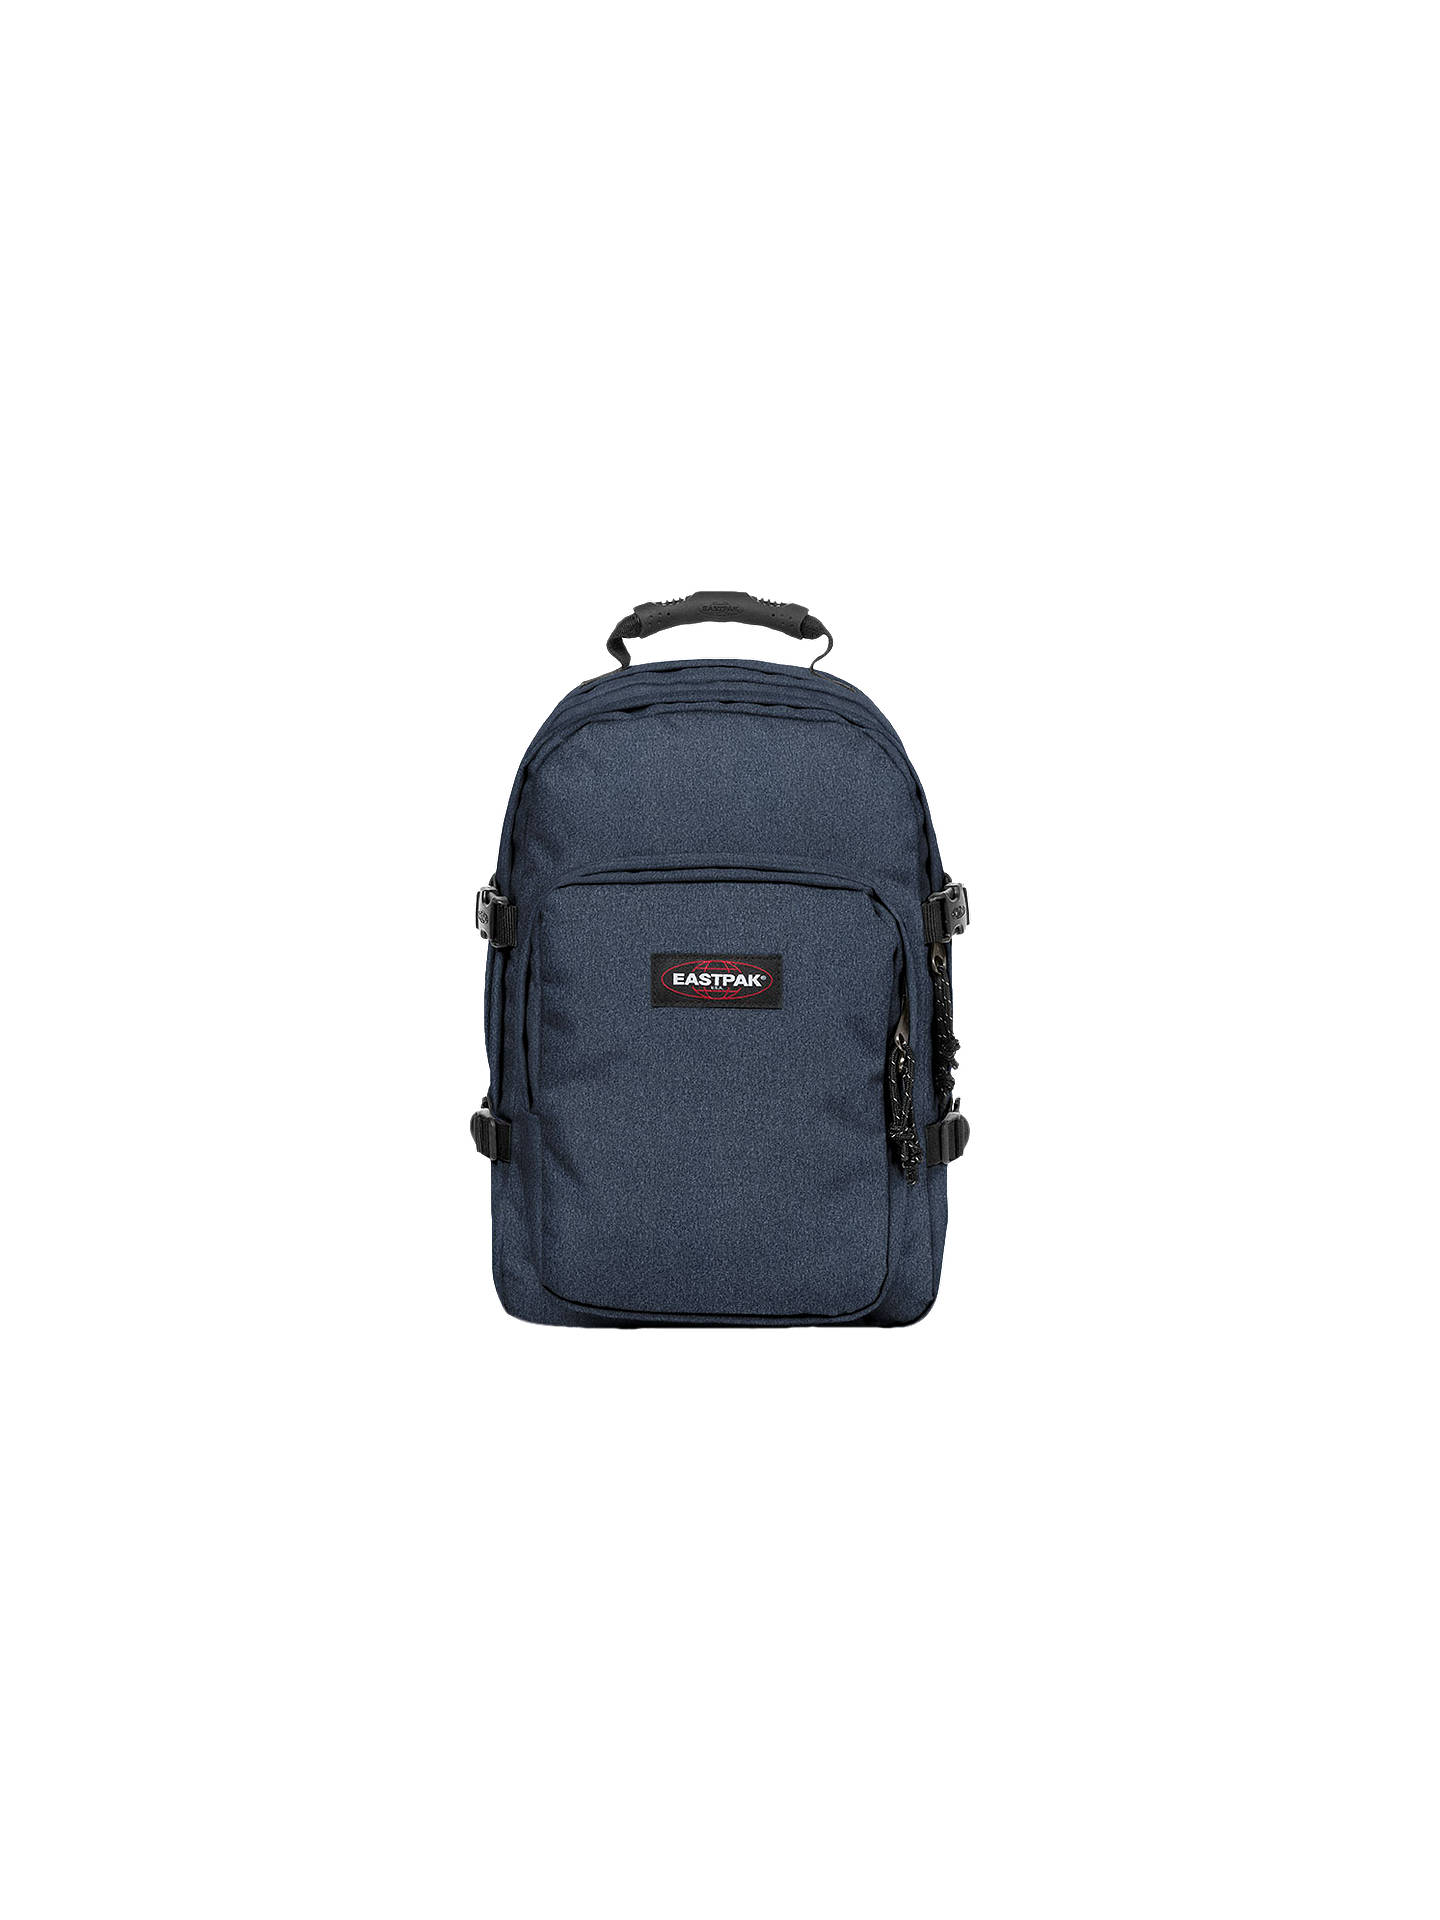 BuyEastpak Provider Laptop Backpack 6d548228db41